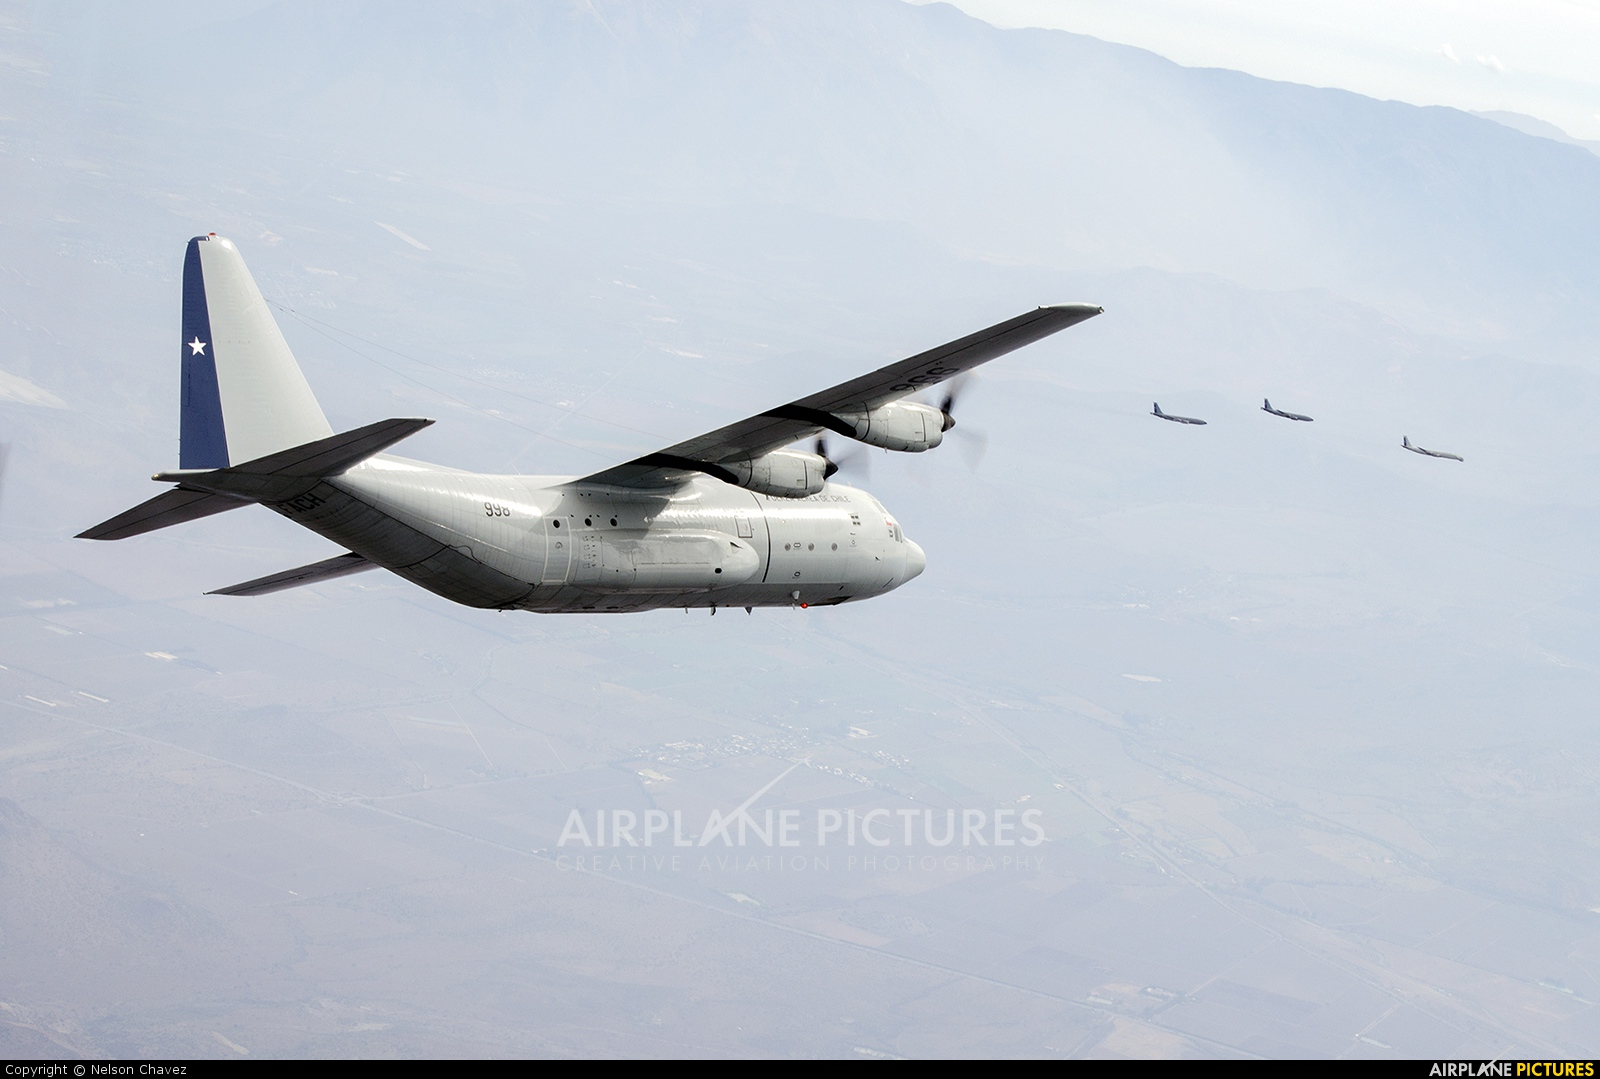 Chile - Air Force 998 aircraft at In Flight - Chile